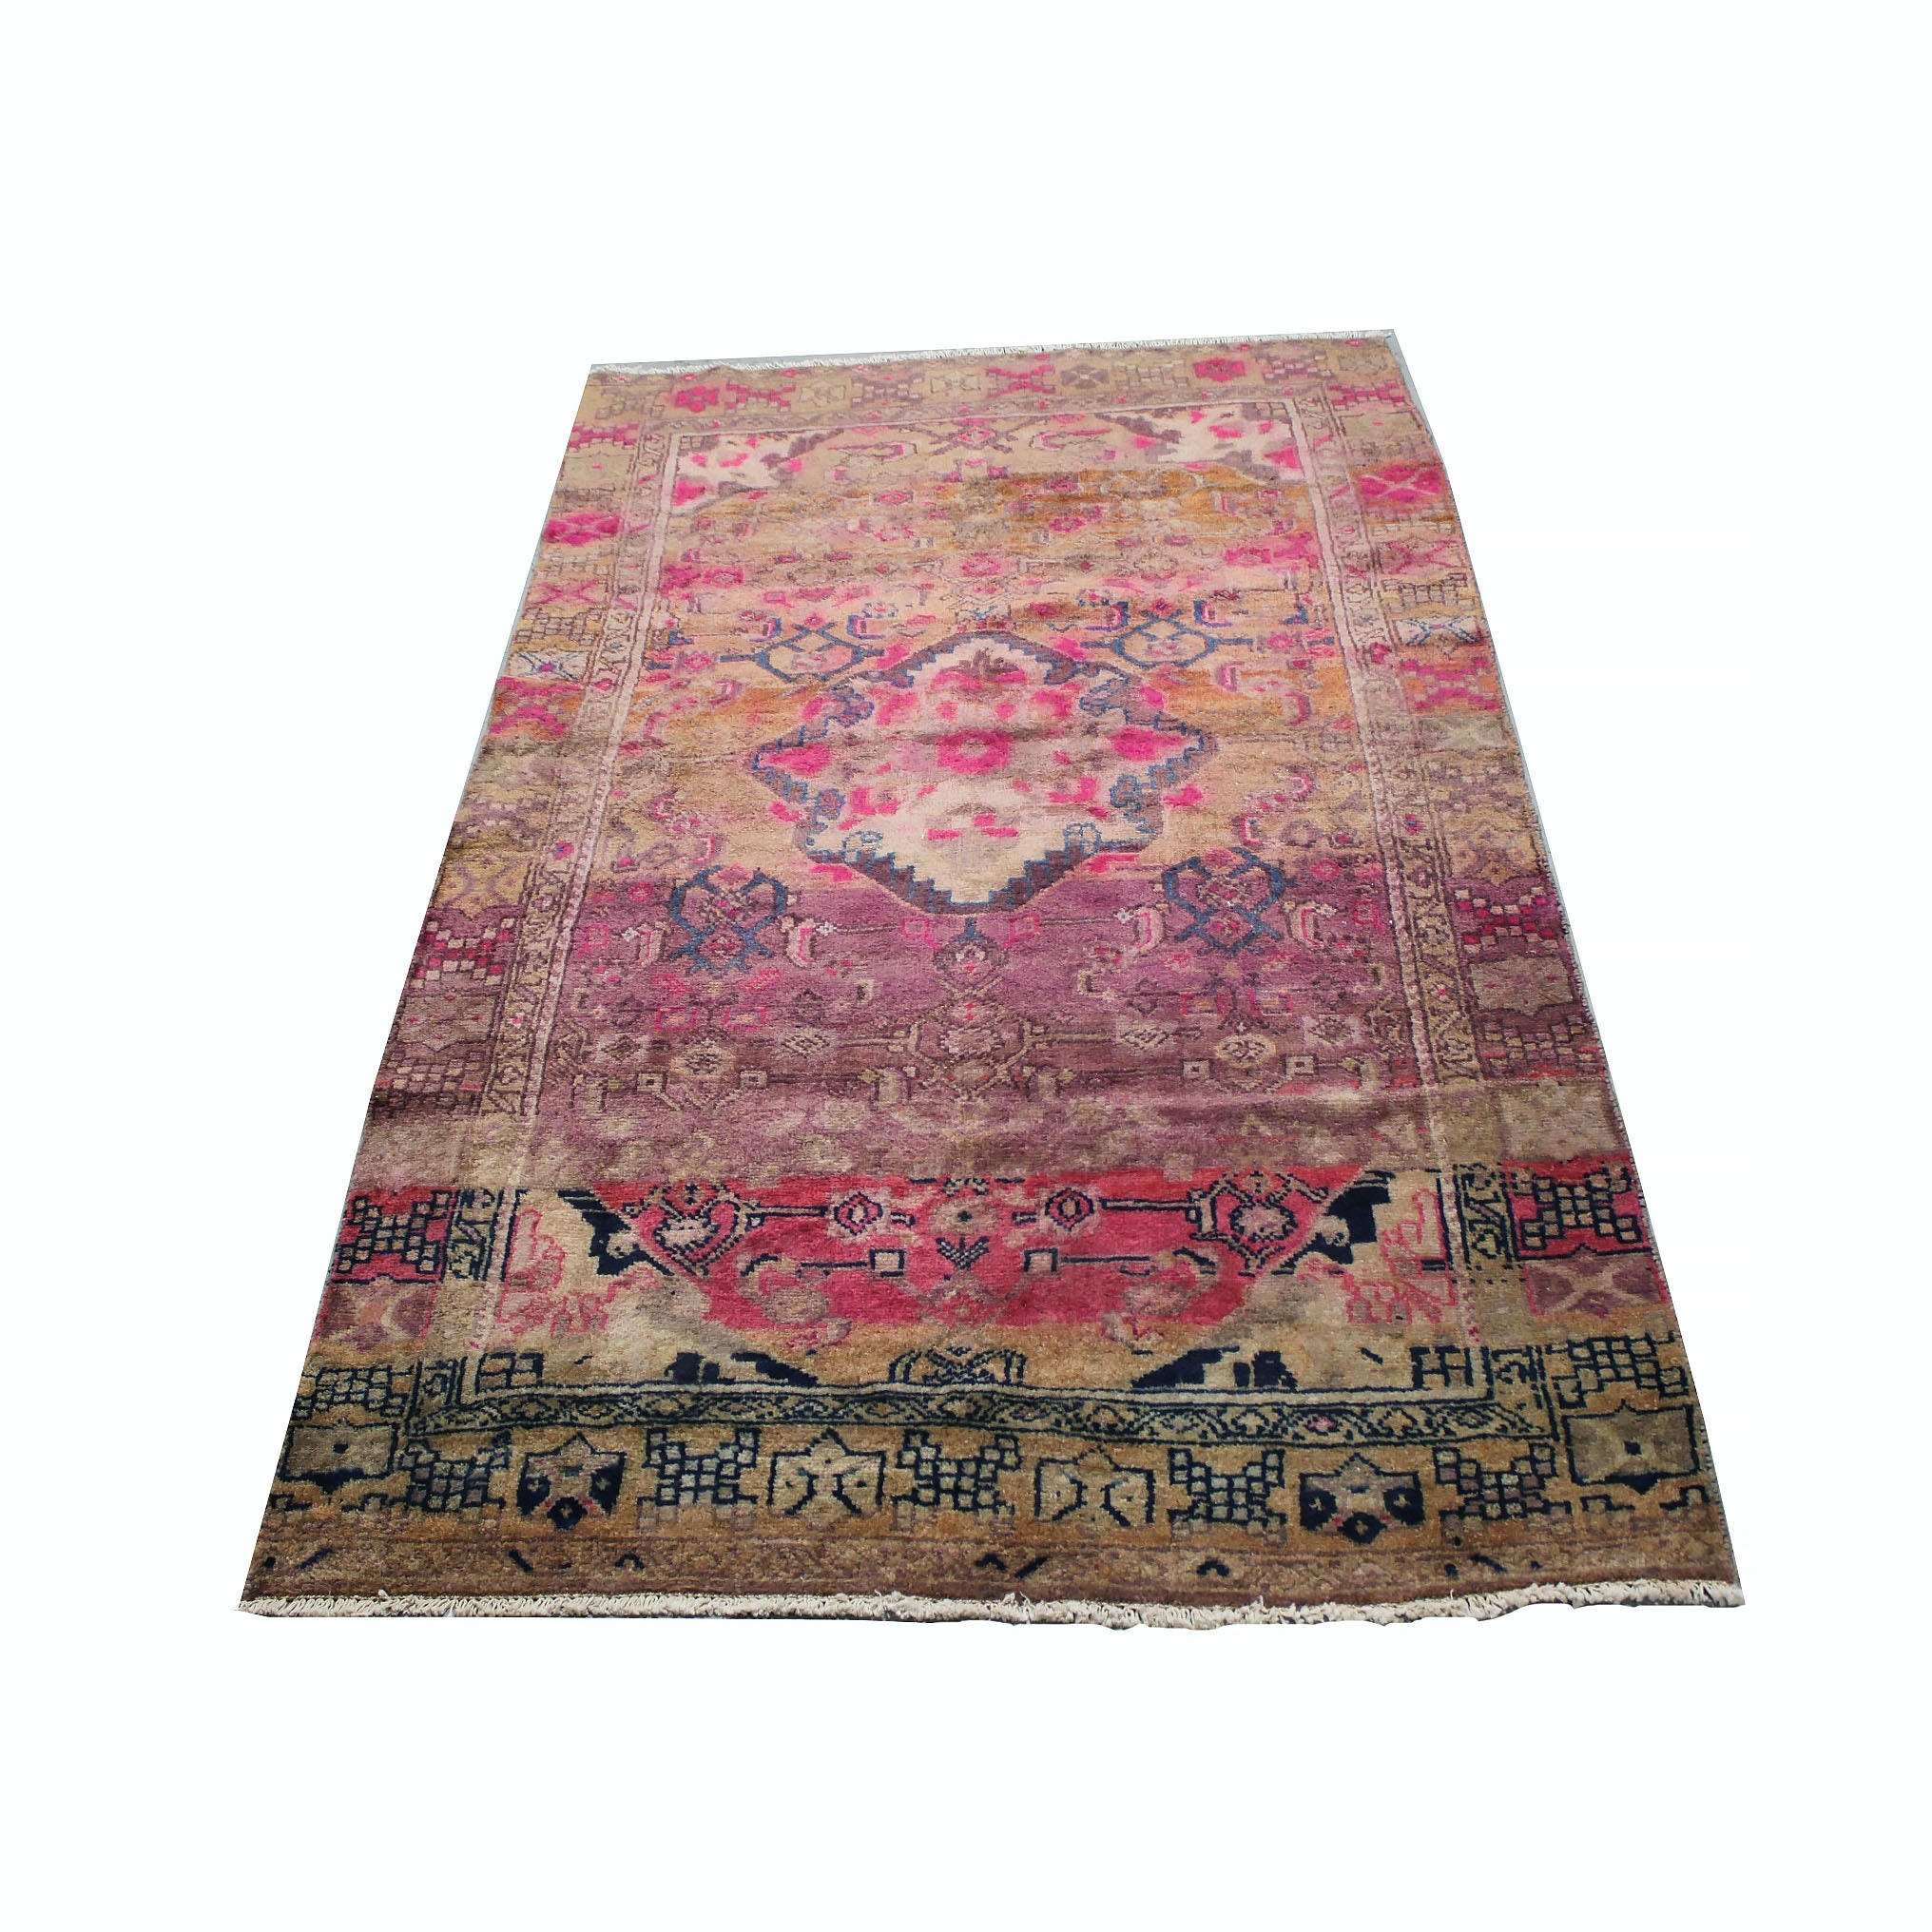 Vintage Hand Knotted Anatolian Wool Area Rug